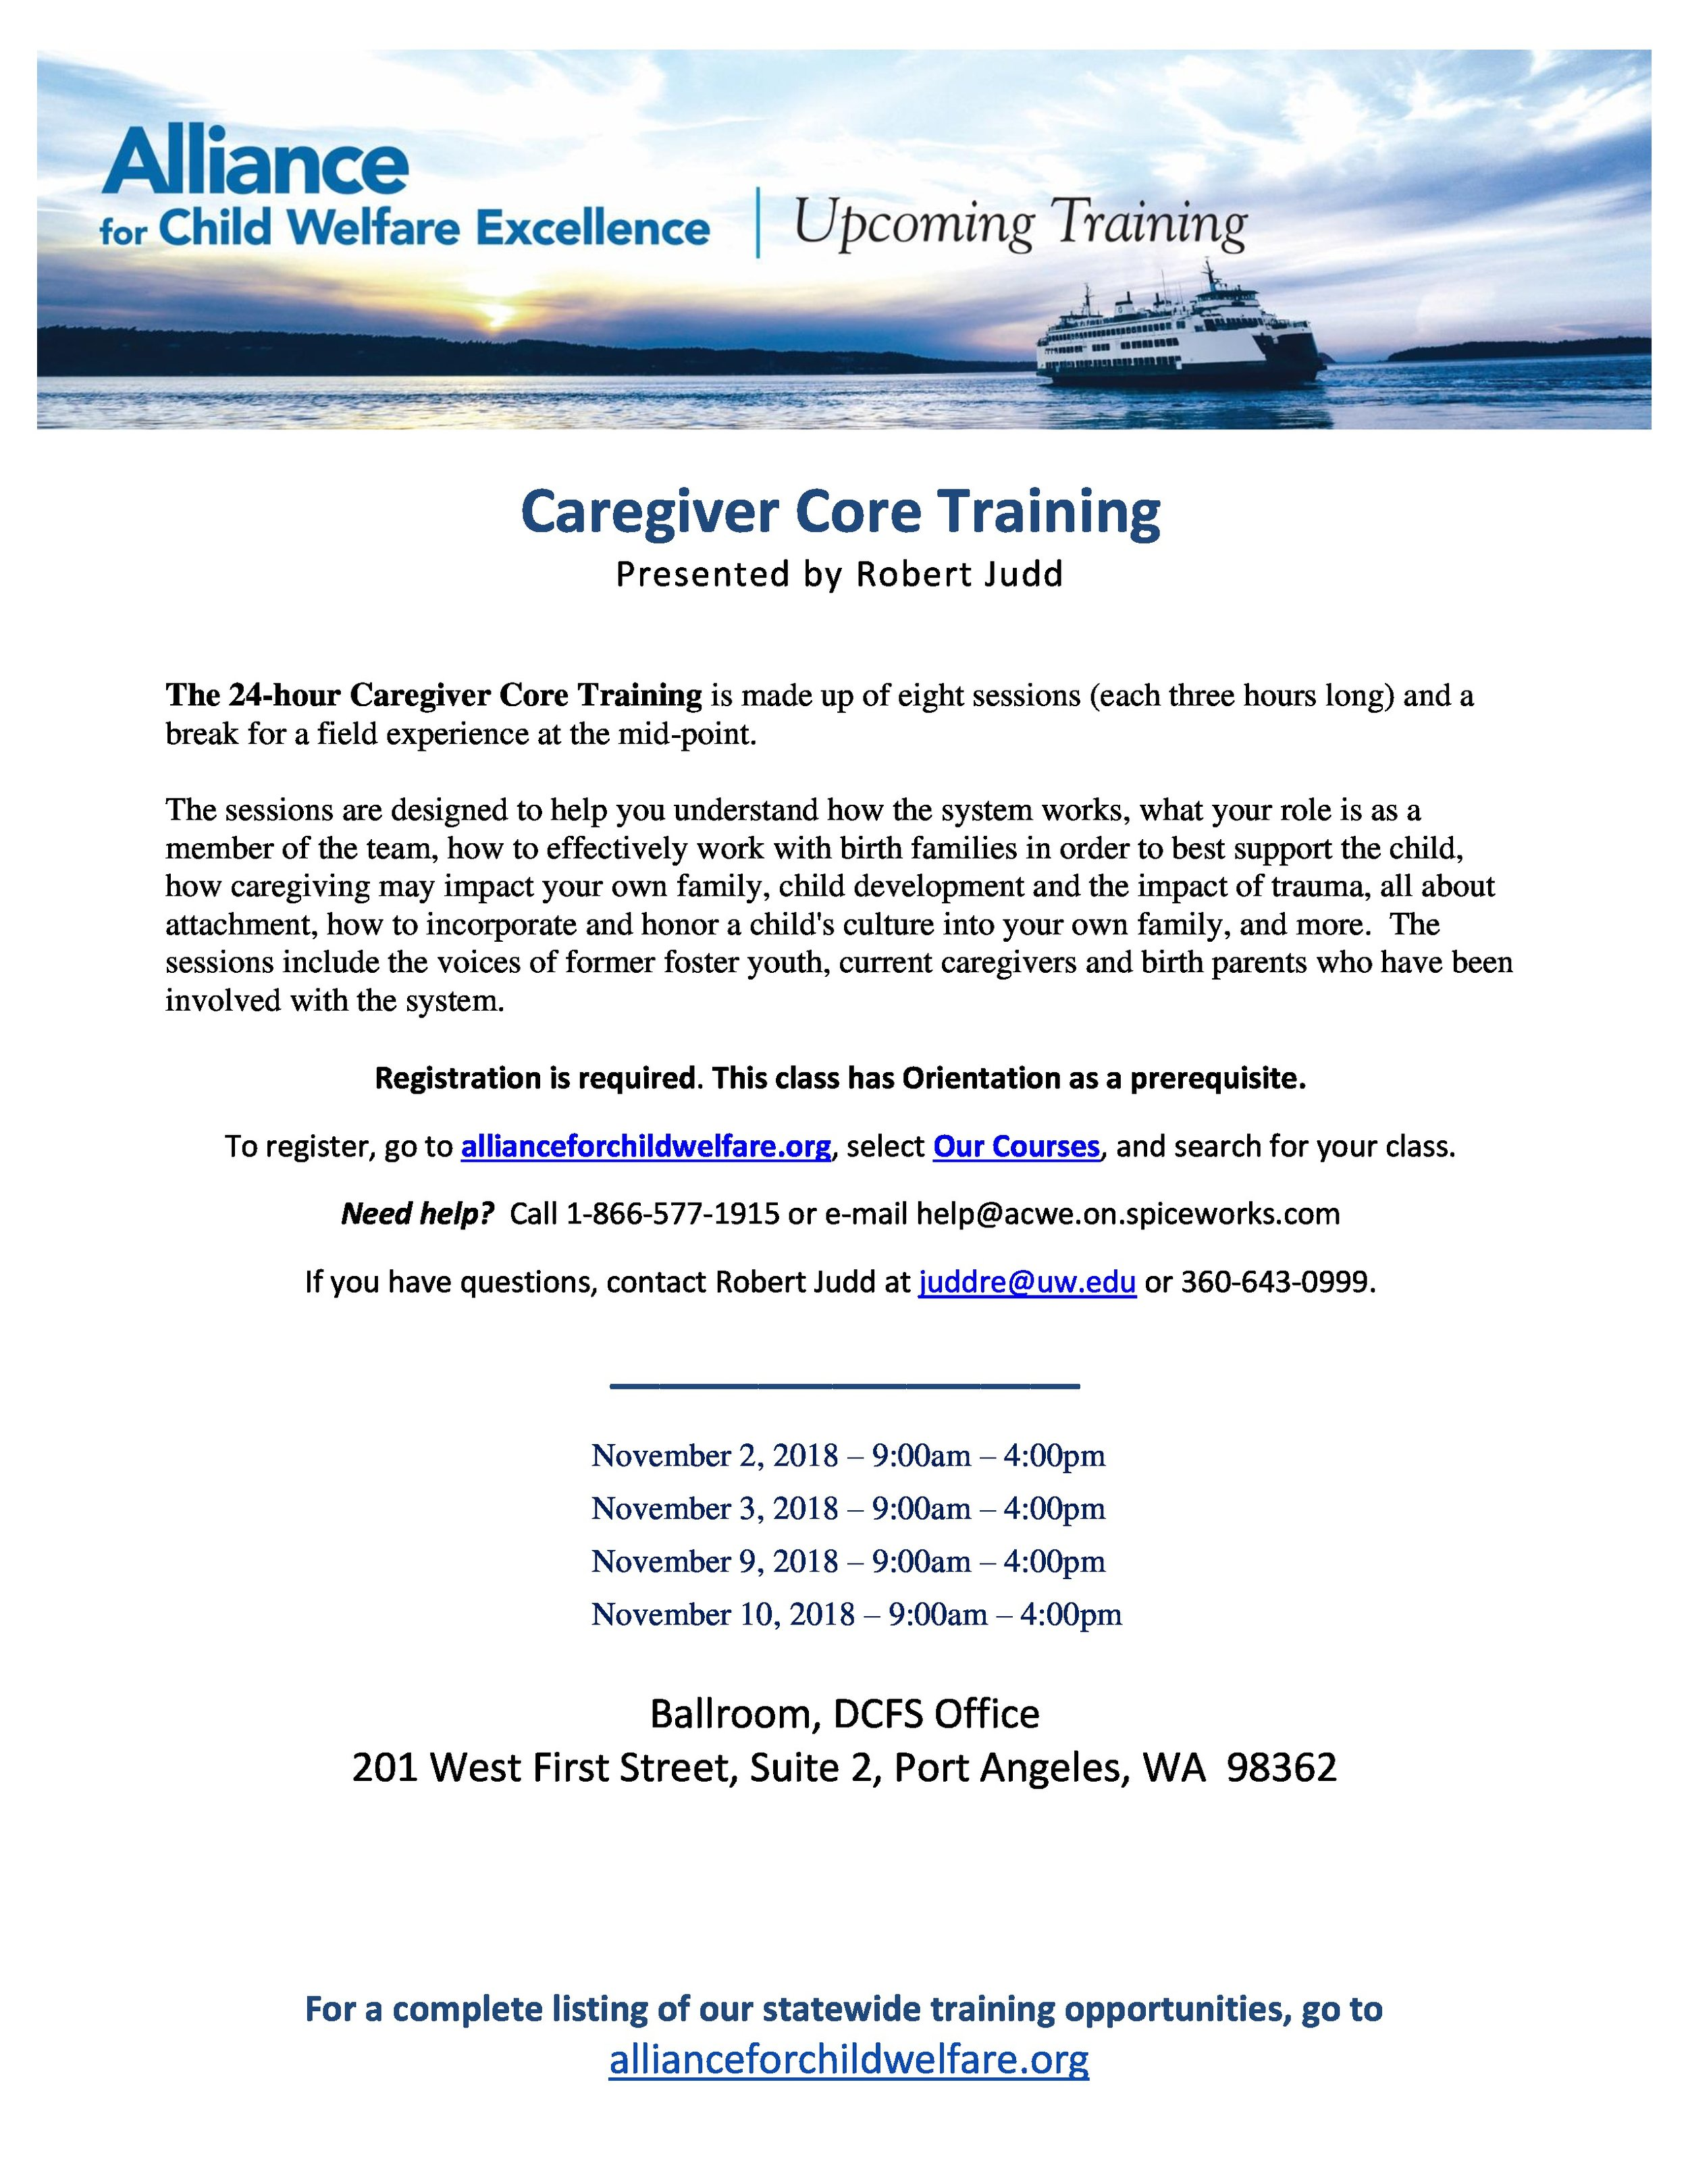 CCT Flyer Port Angeles November 2018-page-0.jpg